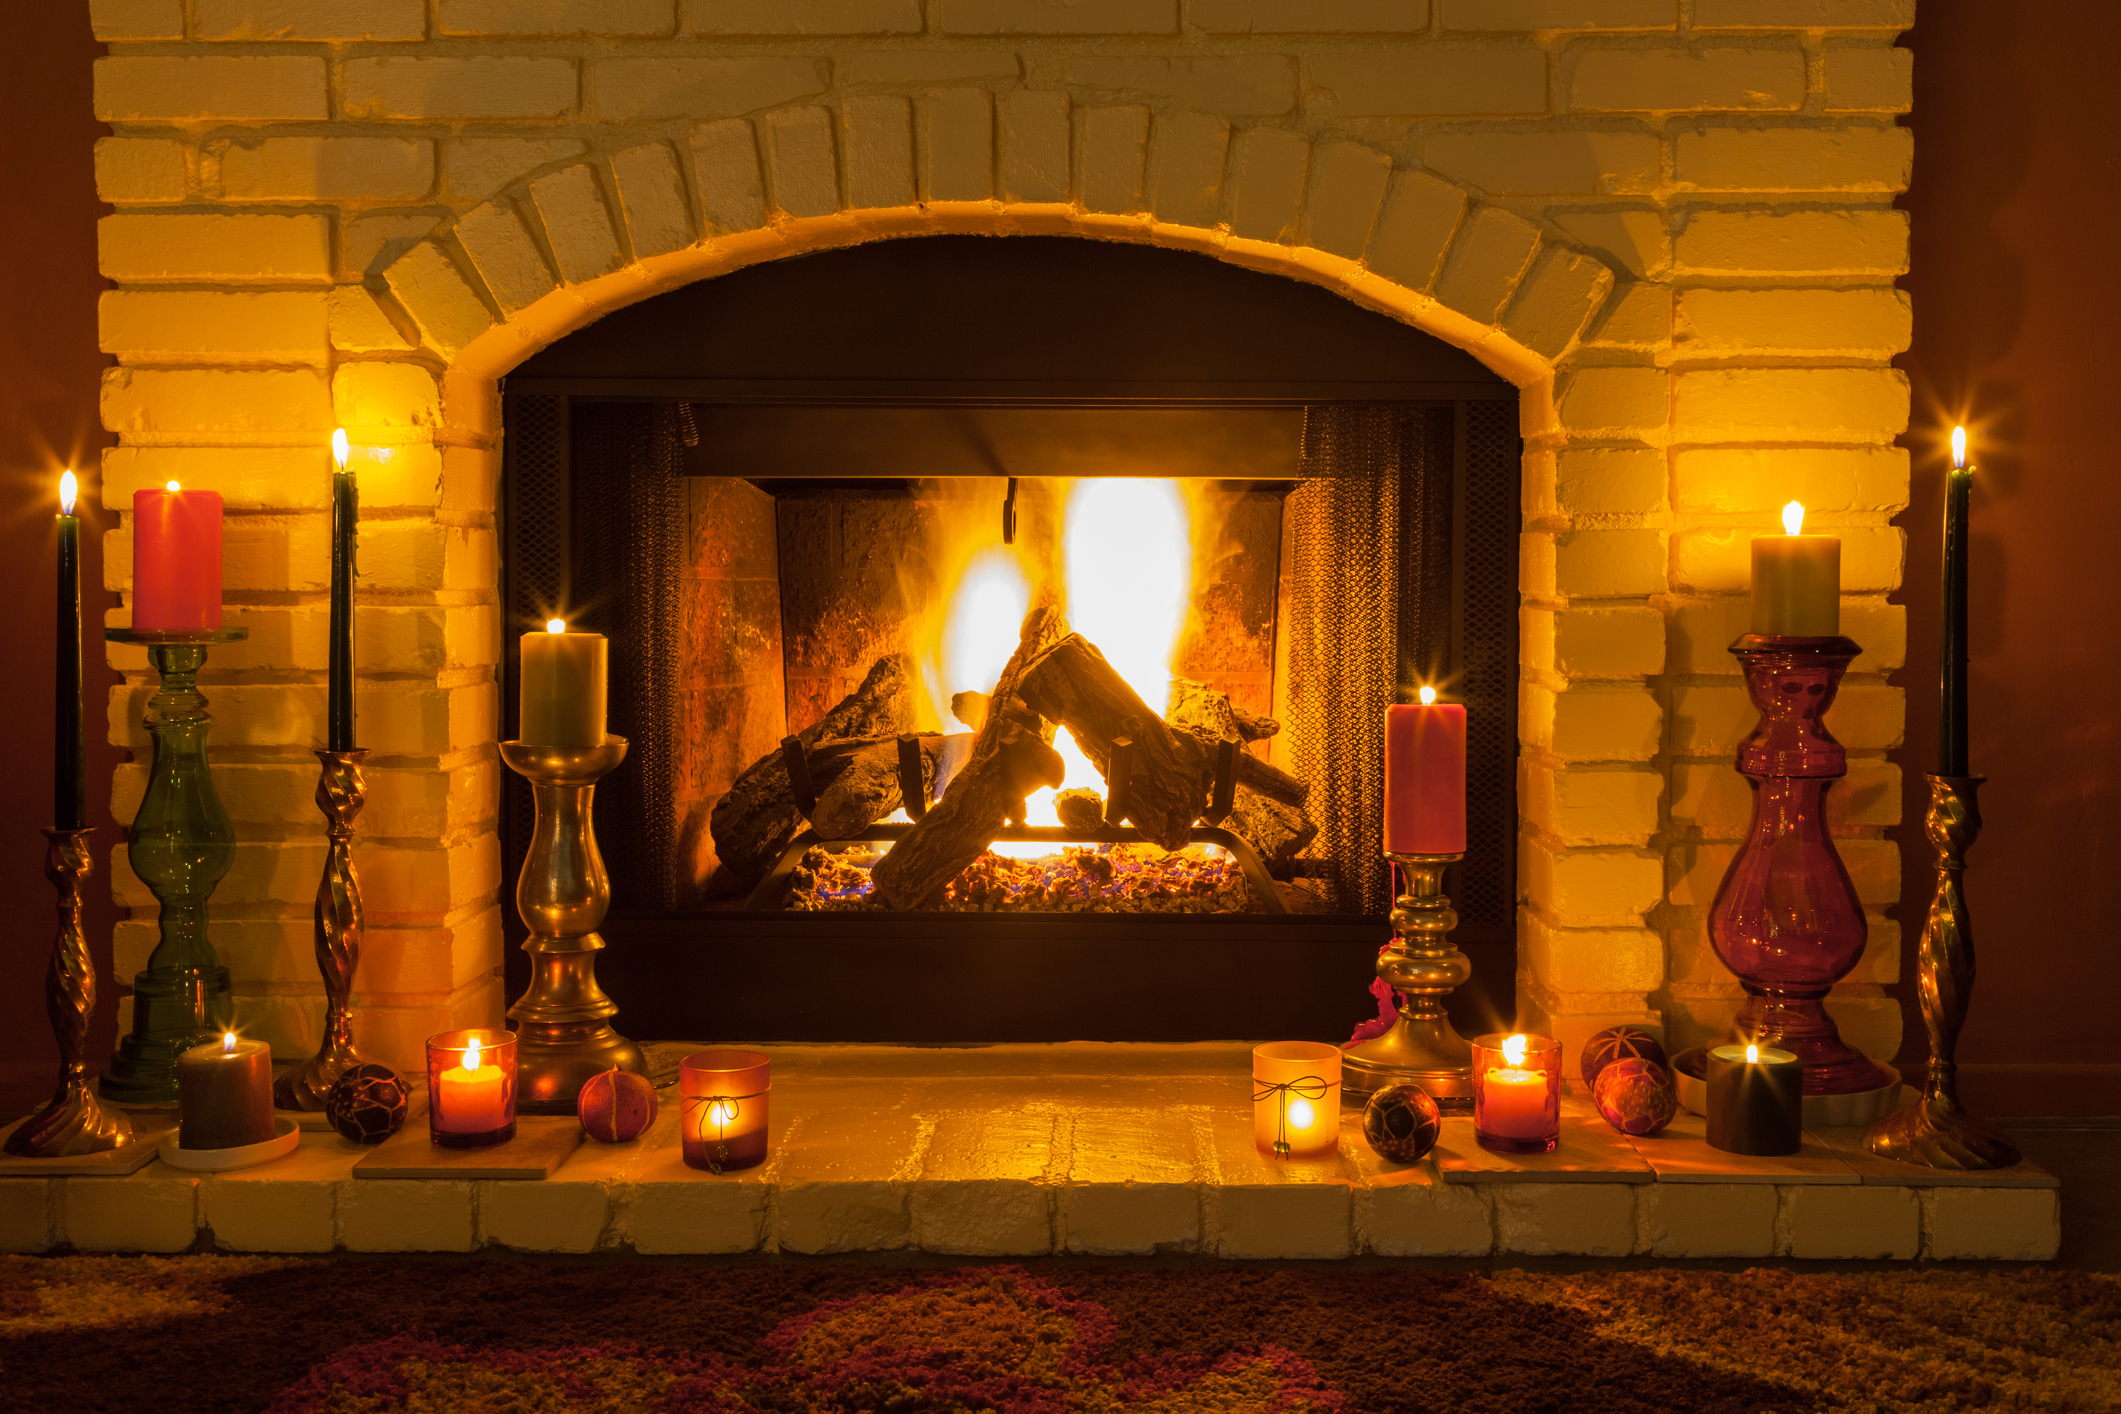 Fireplace With Christmas Music.No Fireplace No Problem Here S A Fireplace Video With